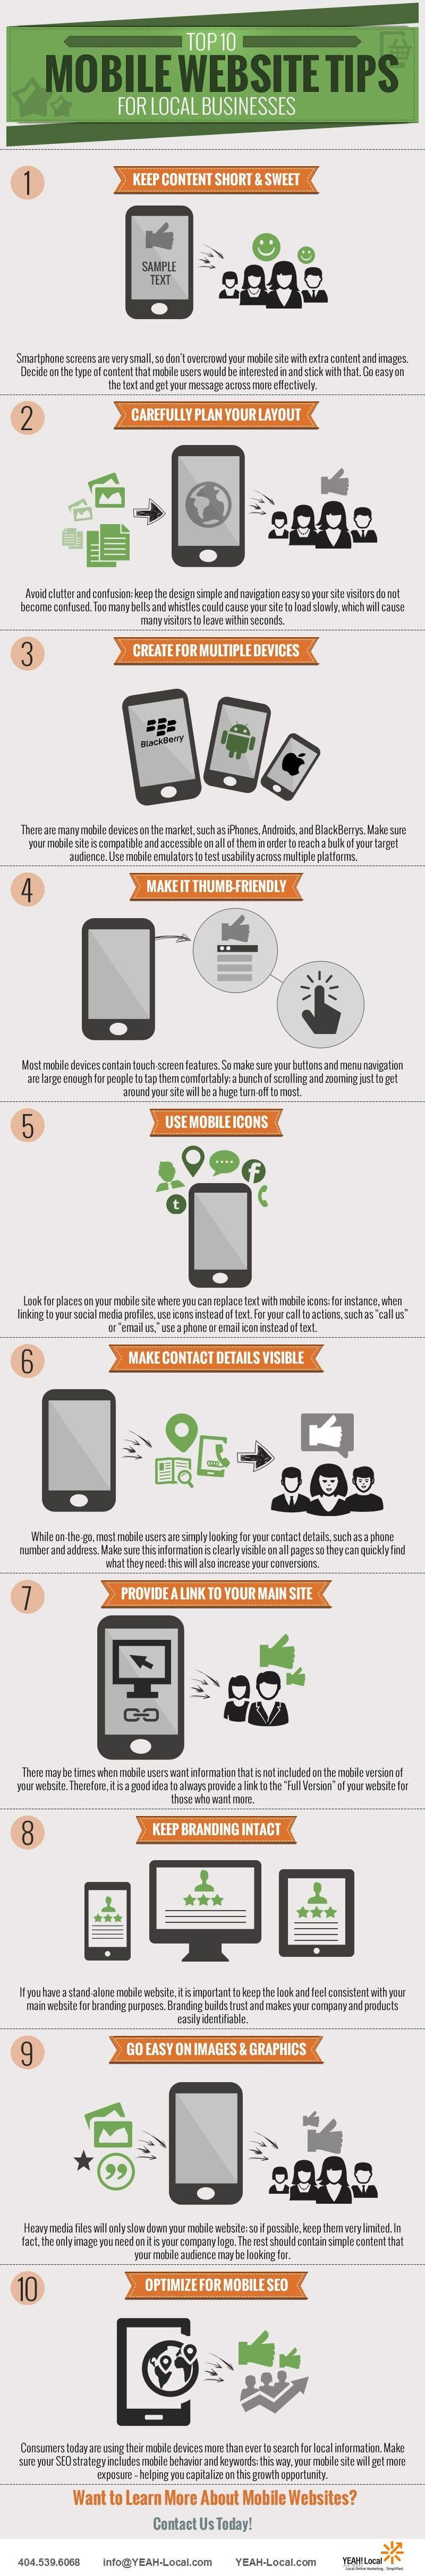 The Top 10 Mobile Friendly Website Tips for Local Businesses [Infographic]